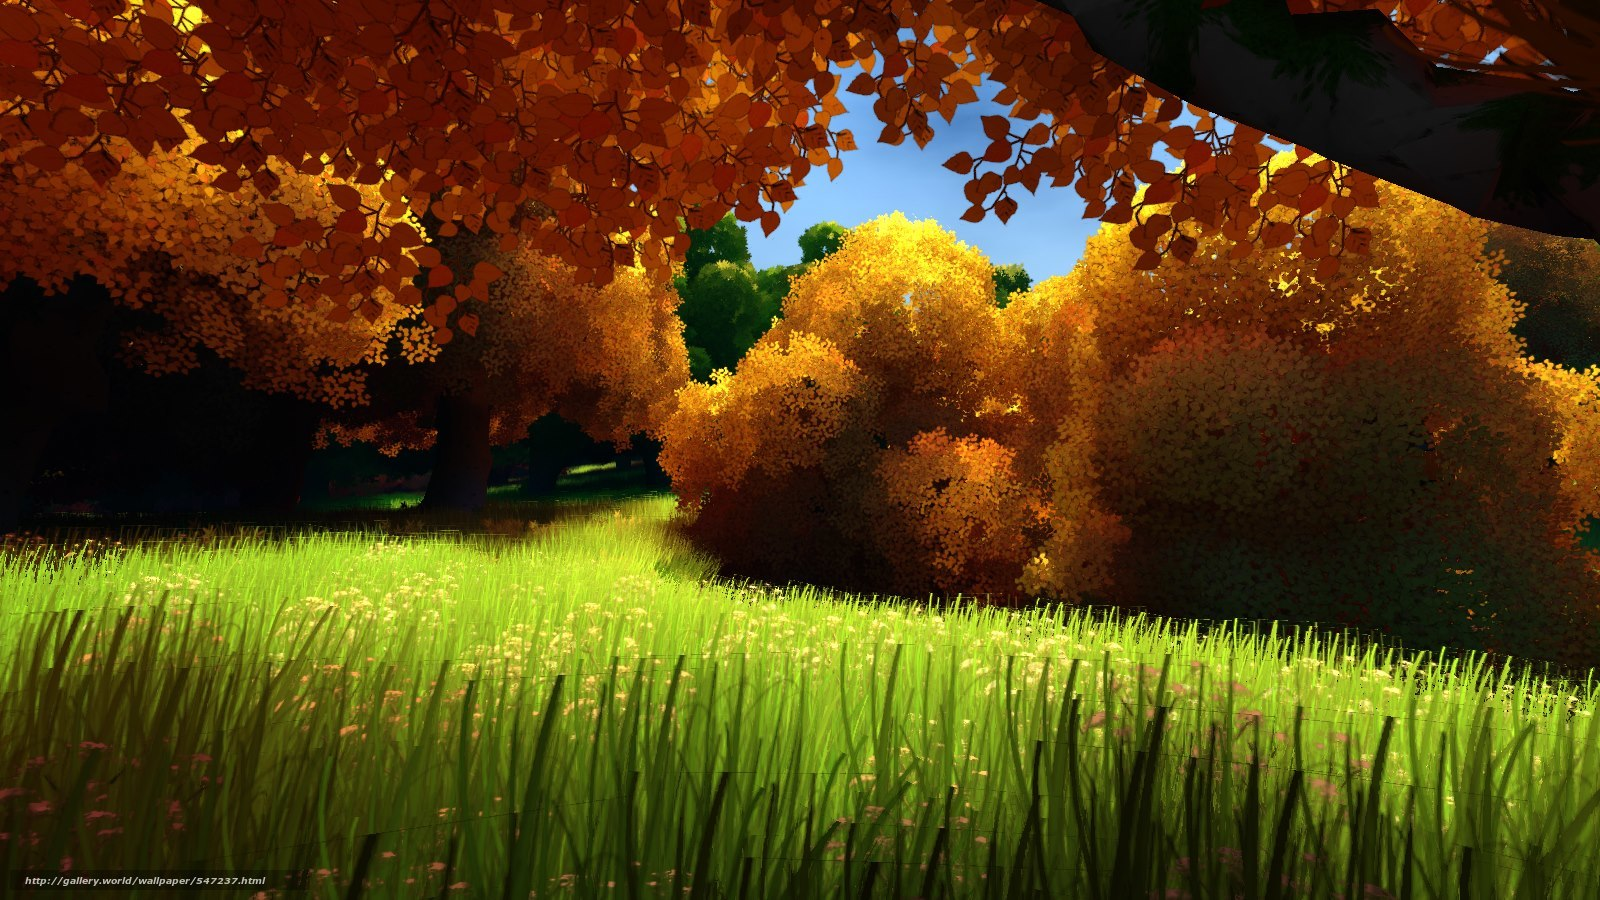 minecraft grass block wallpaper